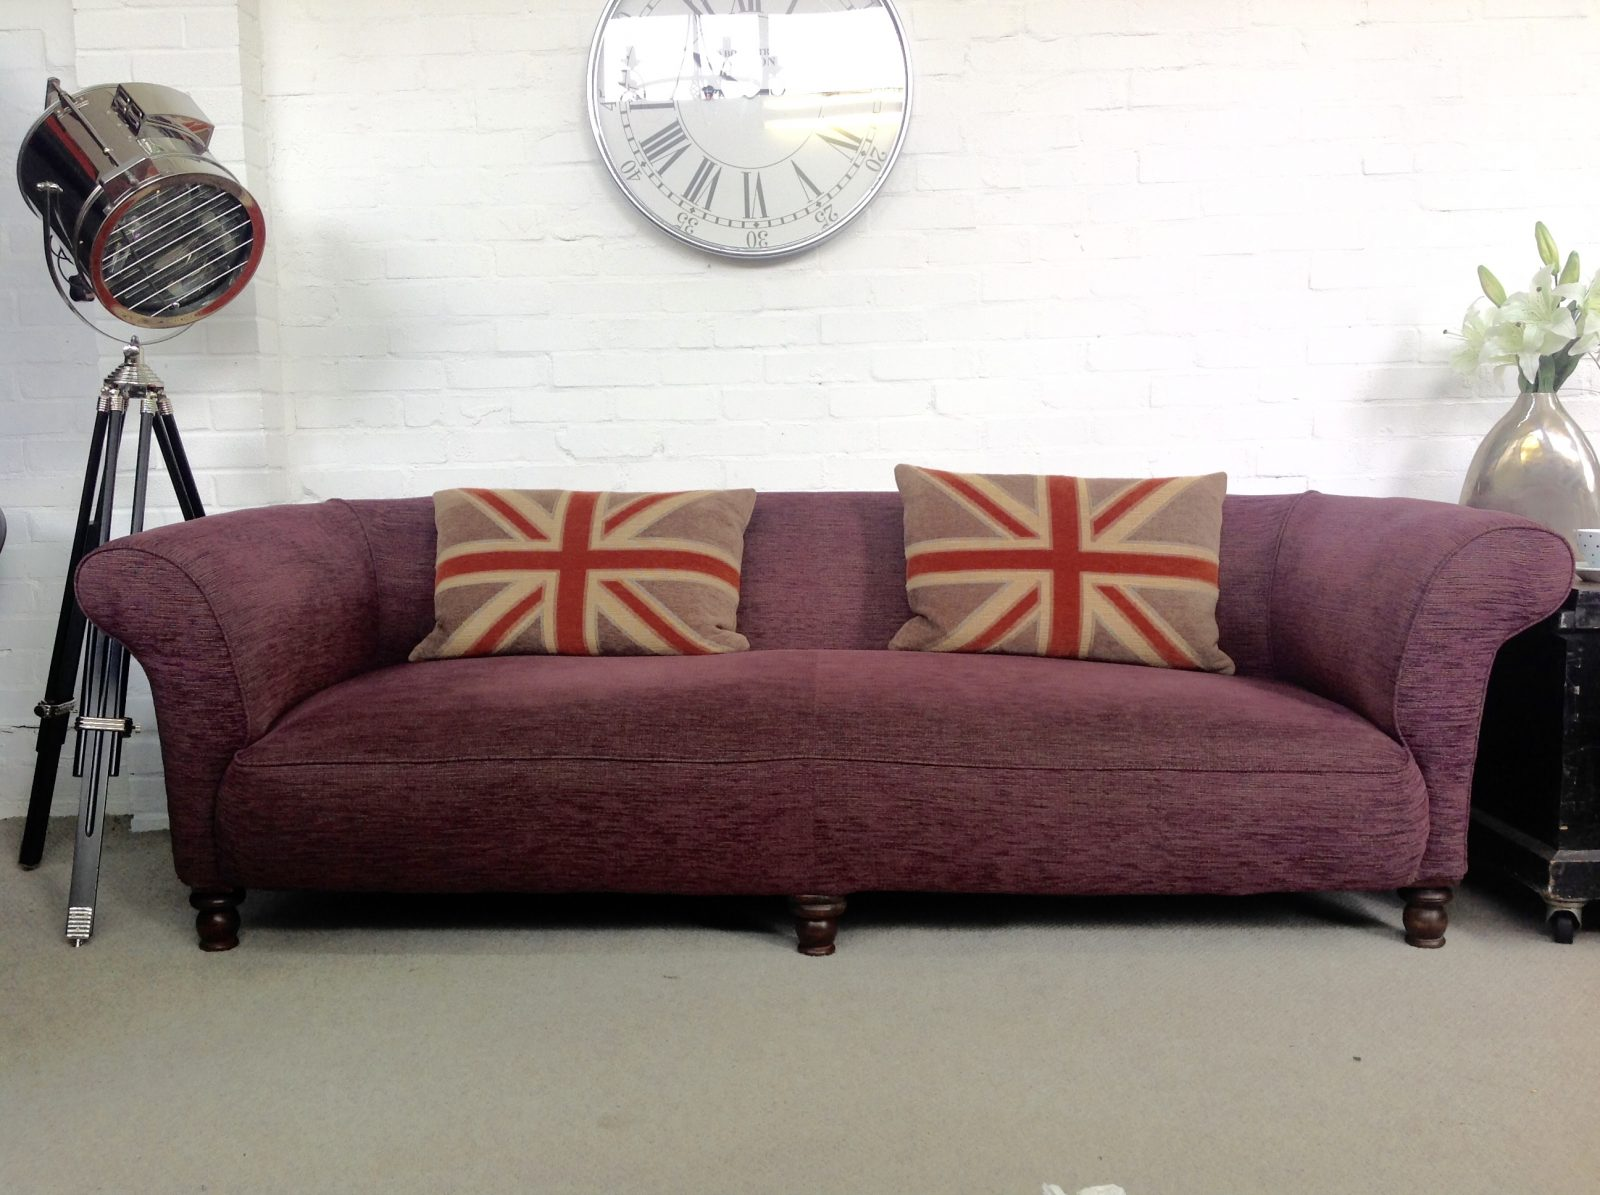 Early 20th Century Antique Chesterfield Sofa.